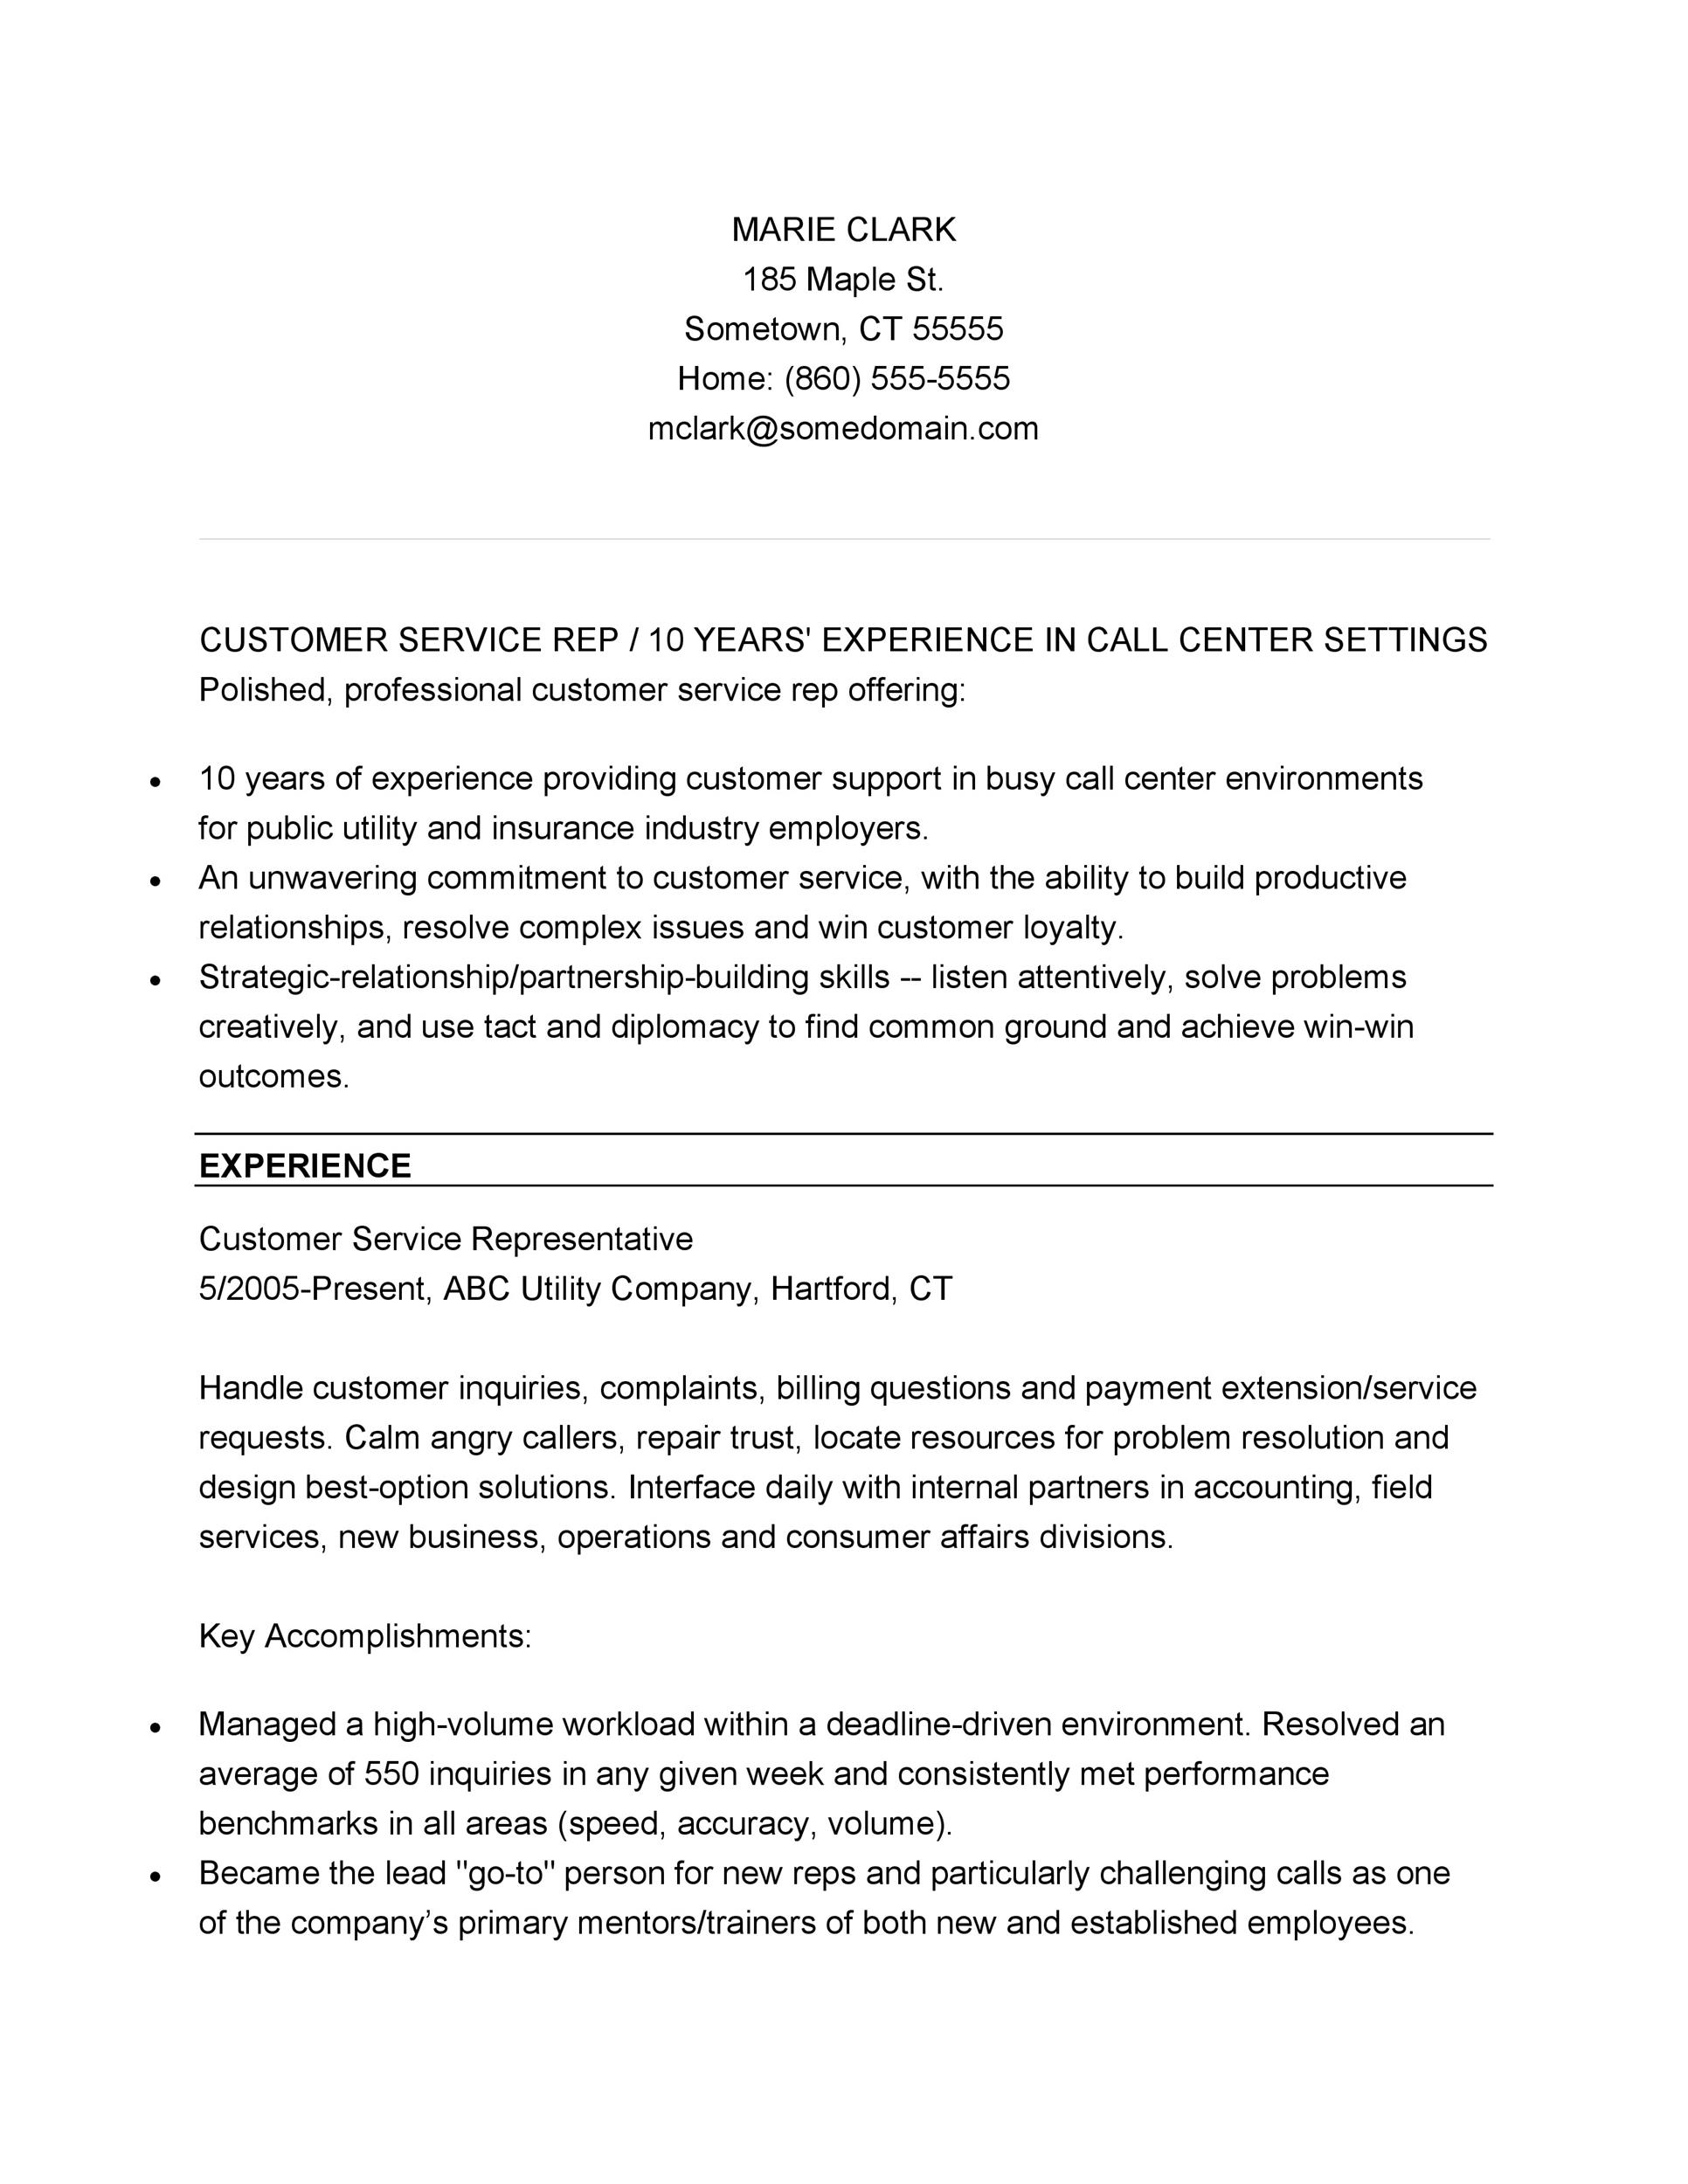 30+ Customer Service Resume Examples - Template Lab - Best Chosen Resume Format